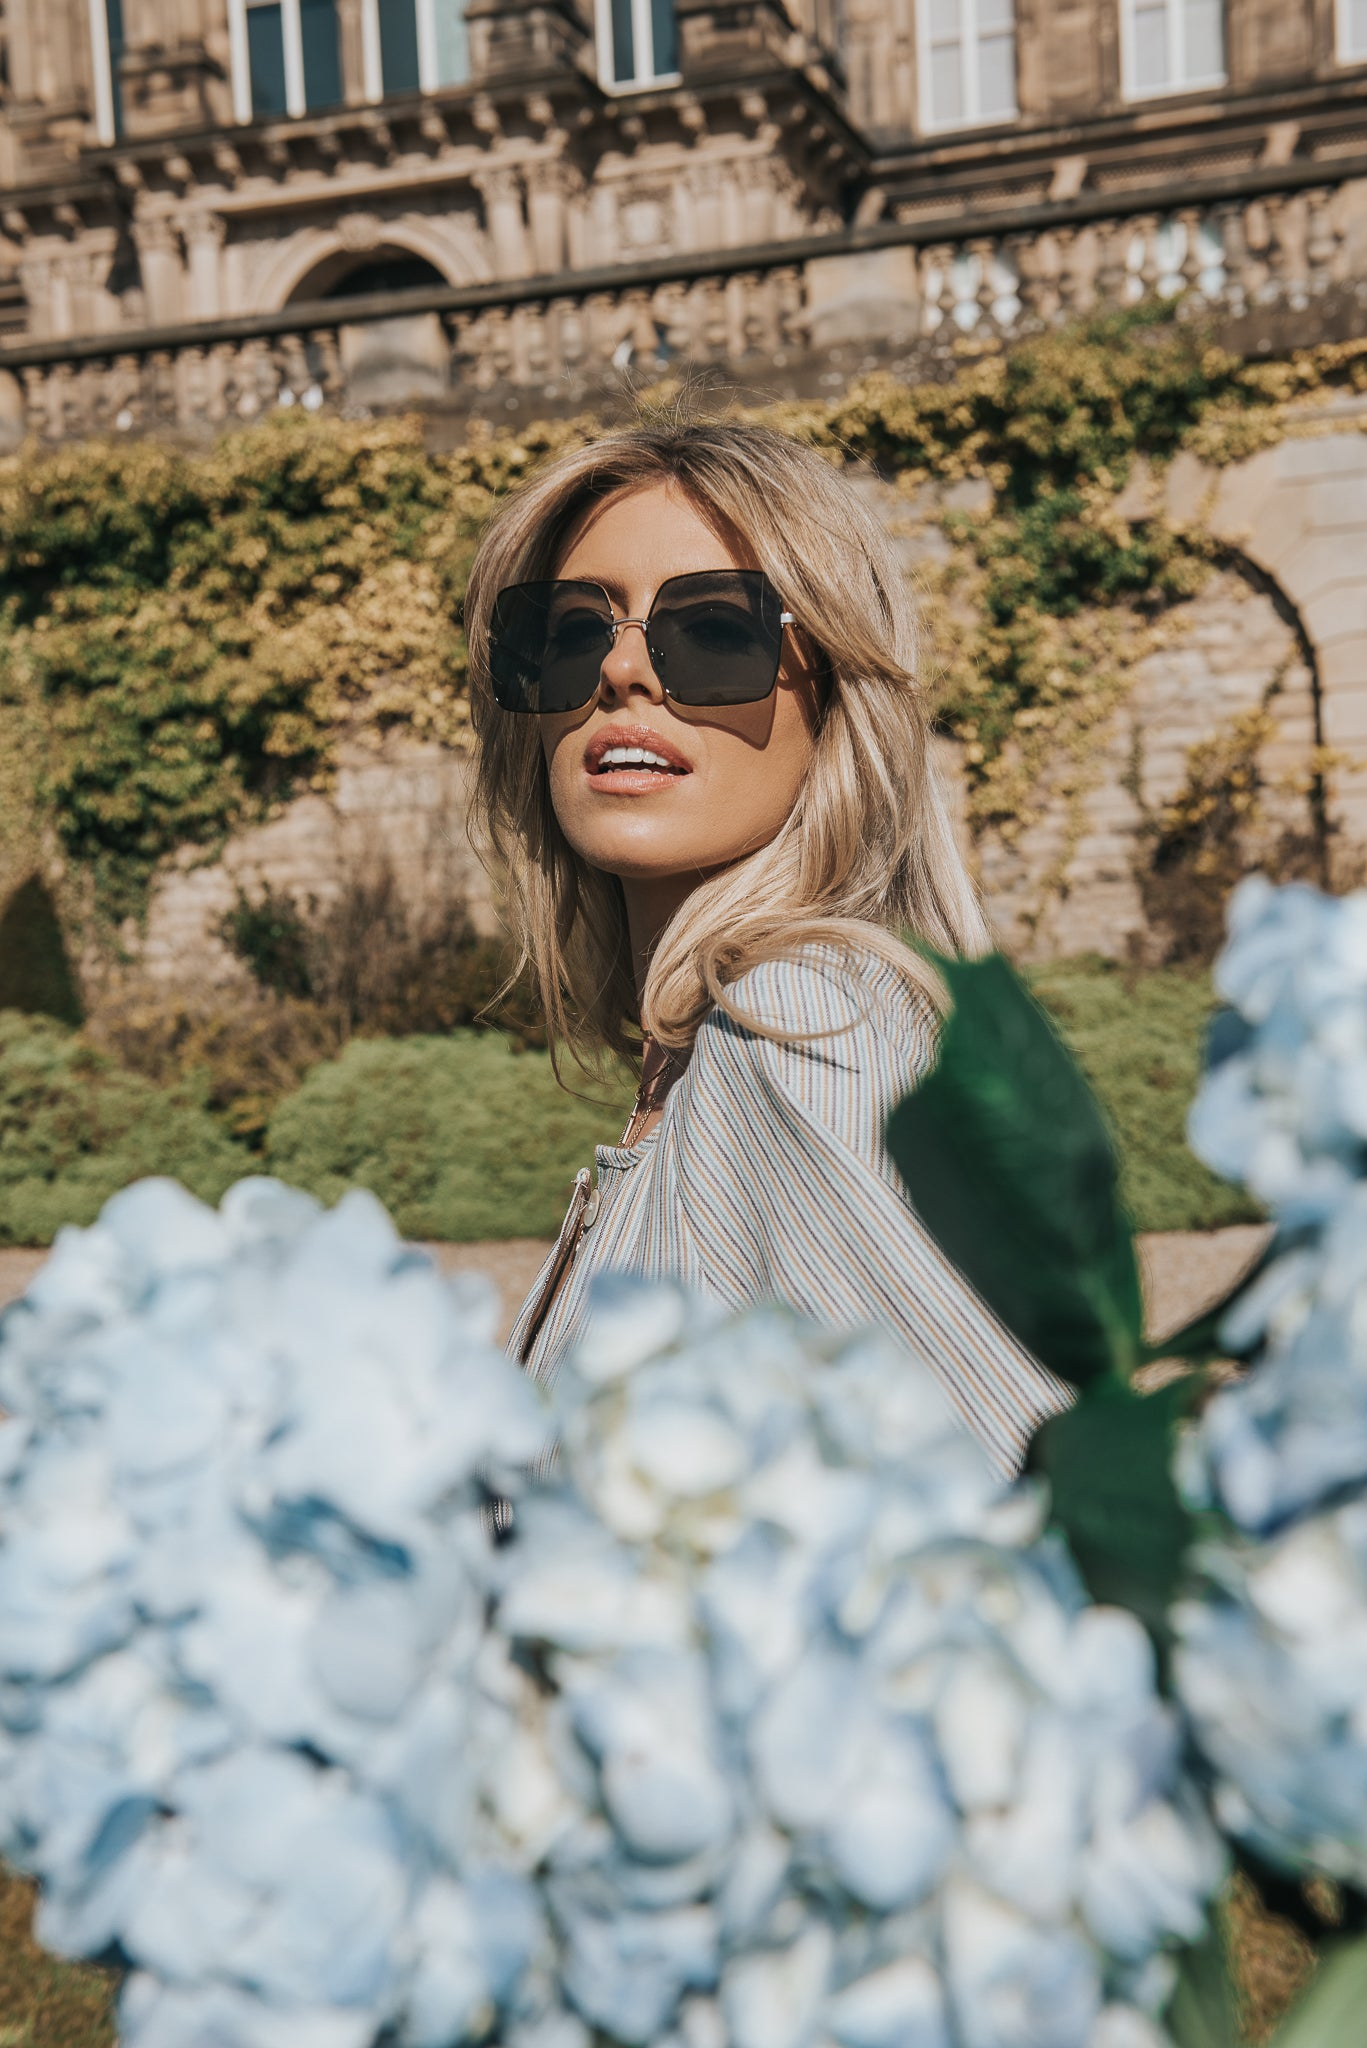 Peering through the blue hydrangea in true french country style Callas blonde hair shines in the sun, she wears large sunglasses and the Bowes Museum and gardens soaks up the sun in the background